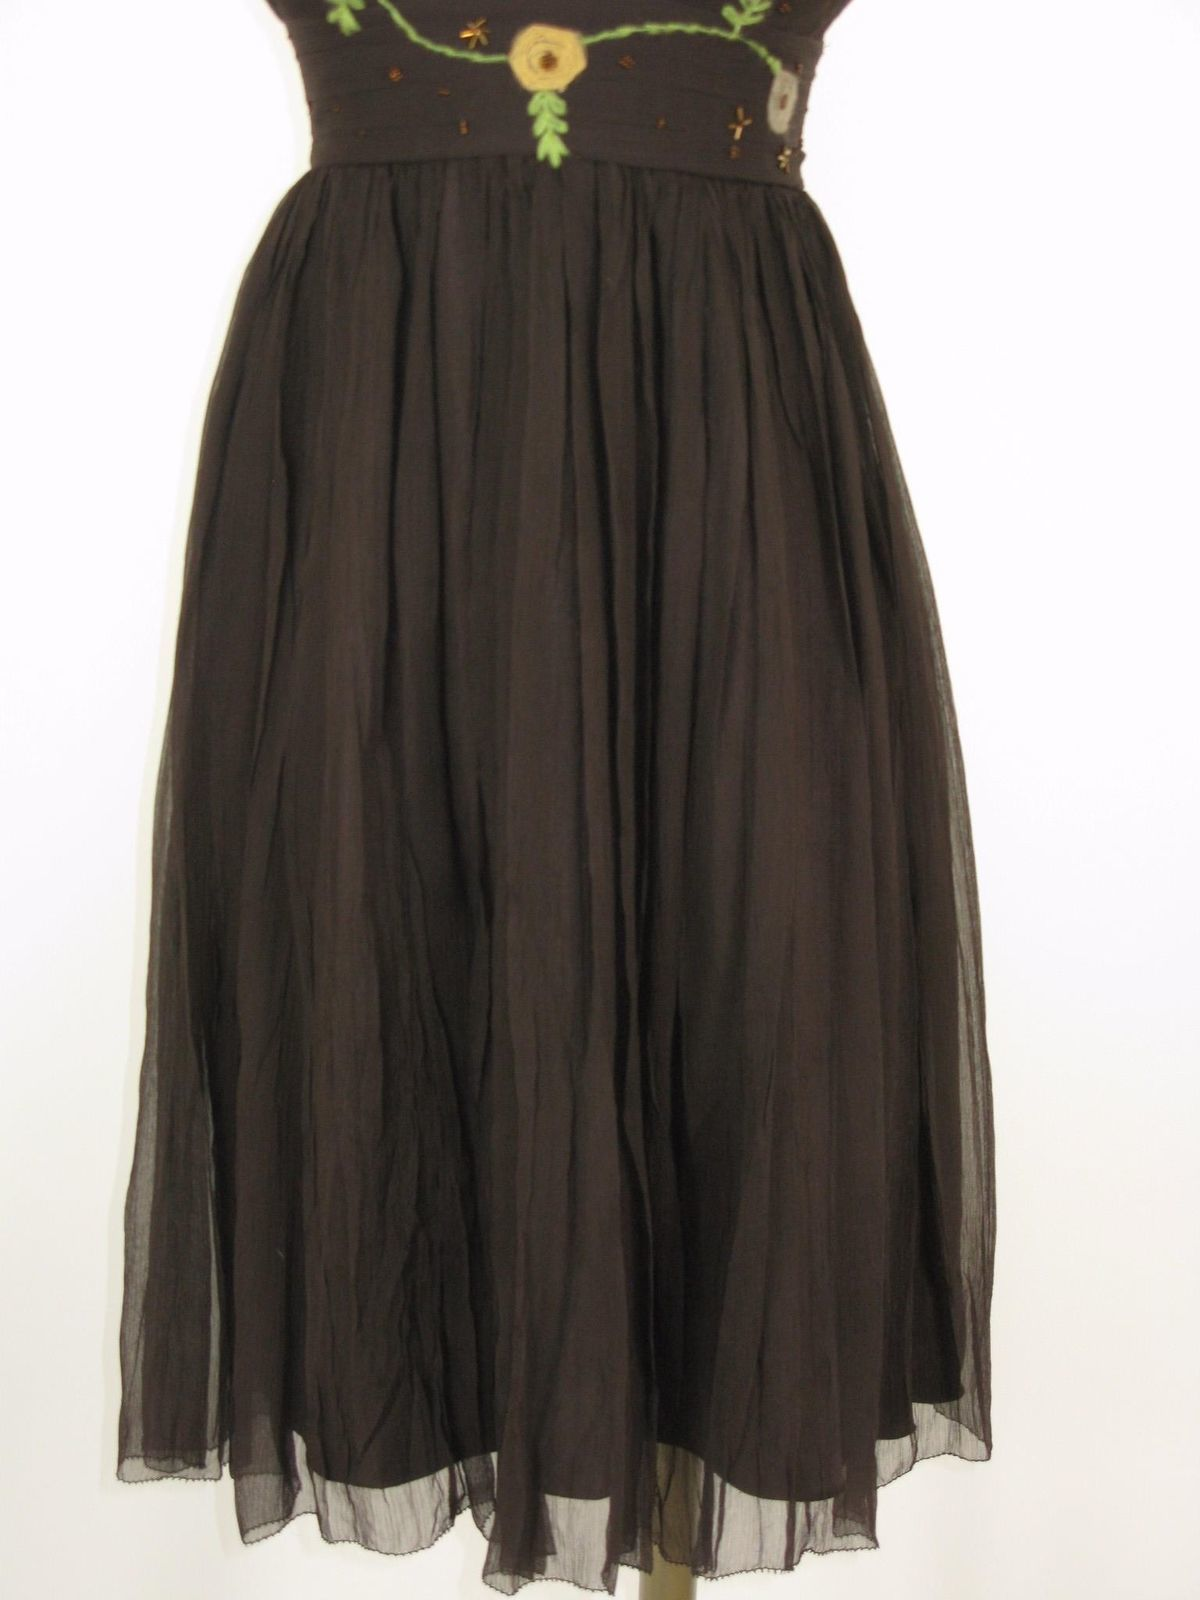 Party Dress To The Max Silk Chiffon Embroidered Dress 2 NWOT $220 MSRP